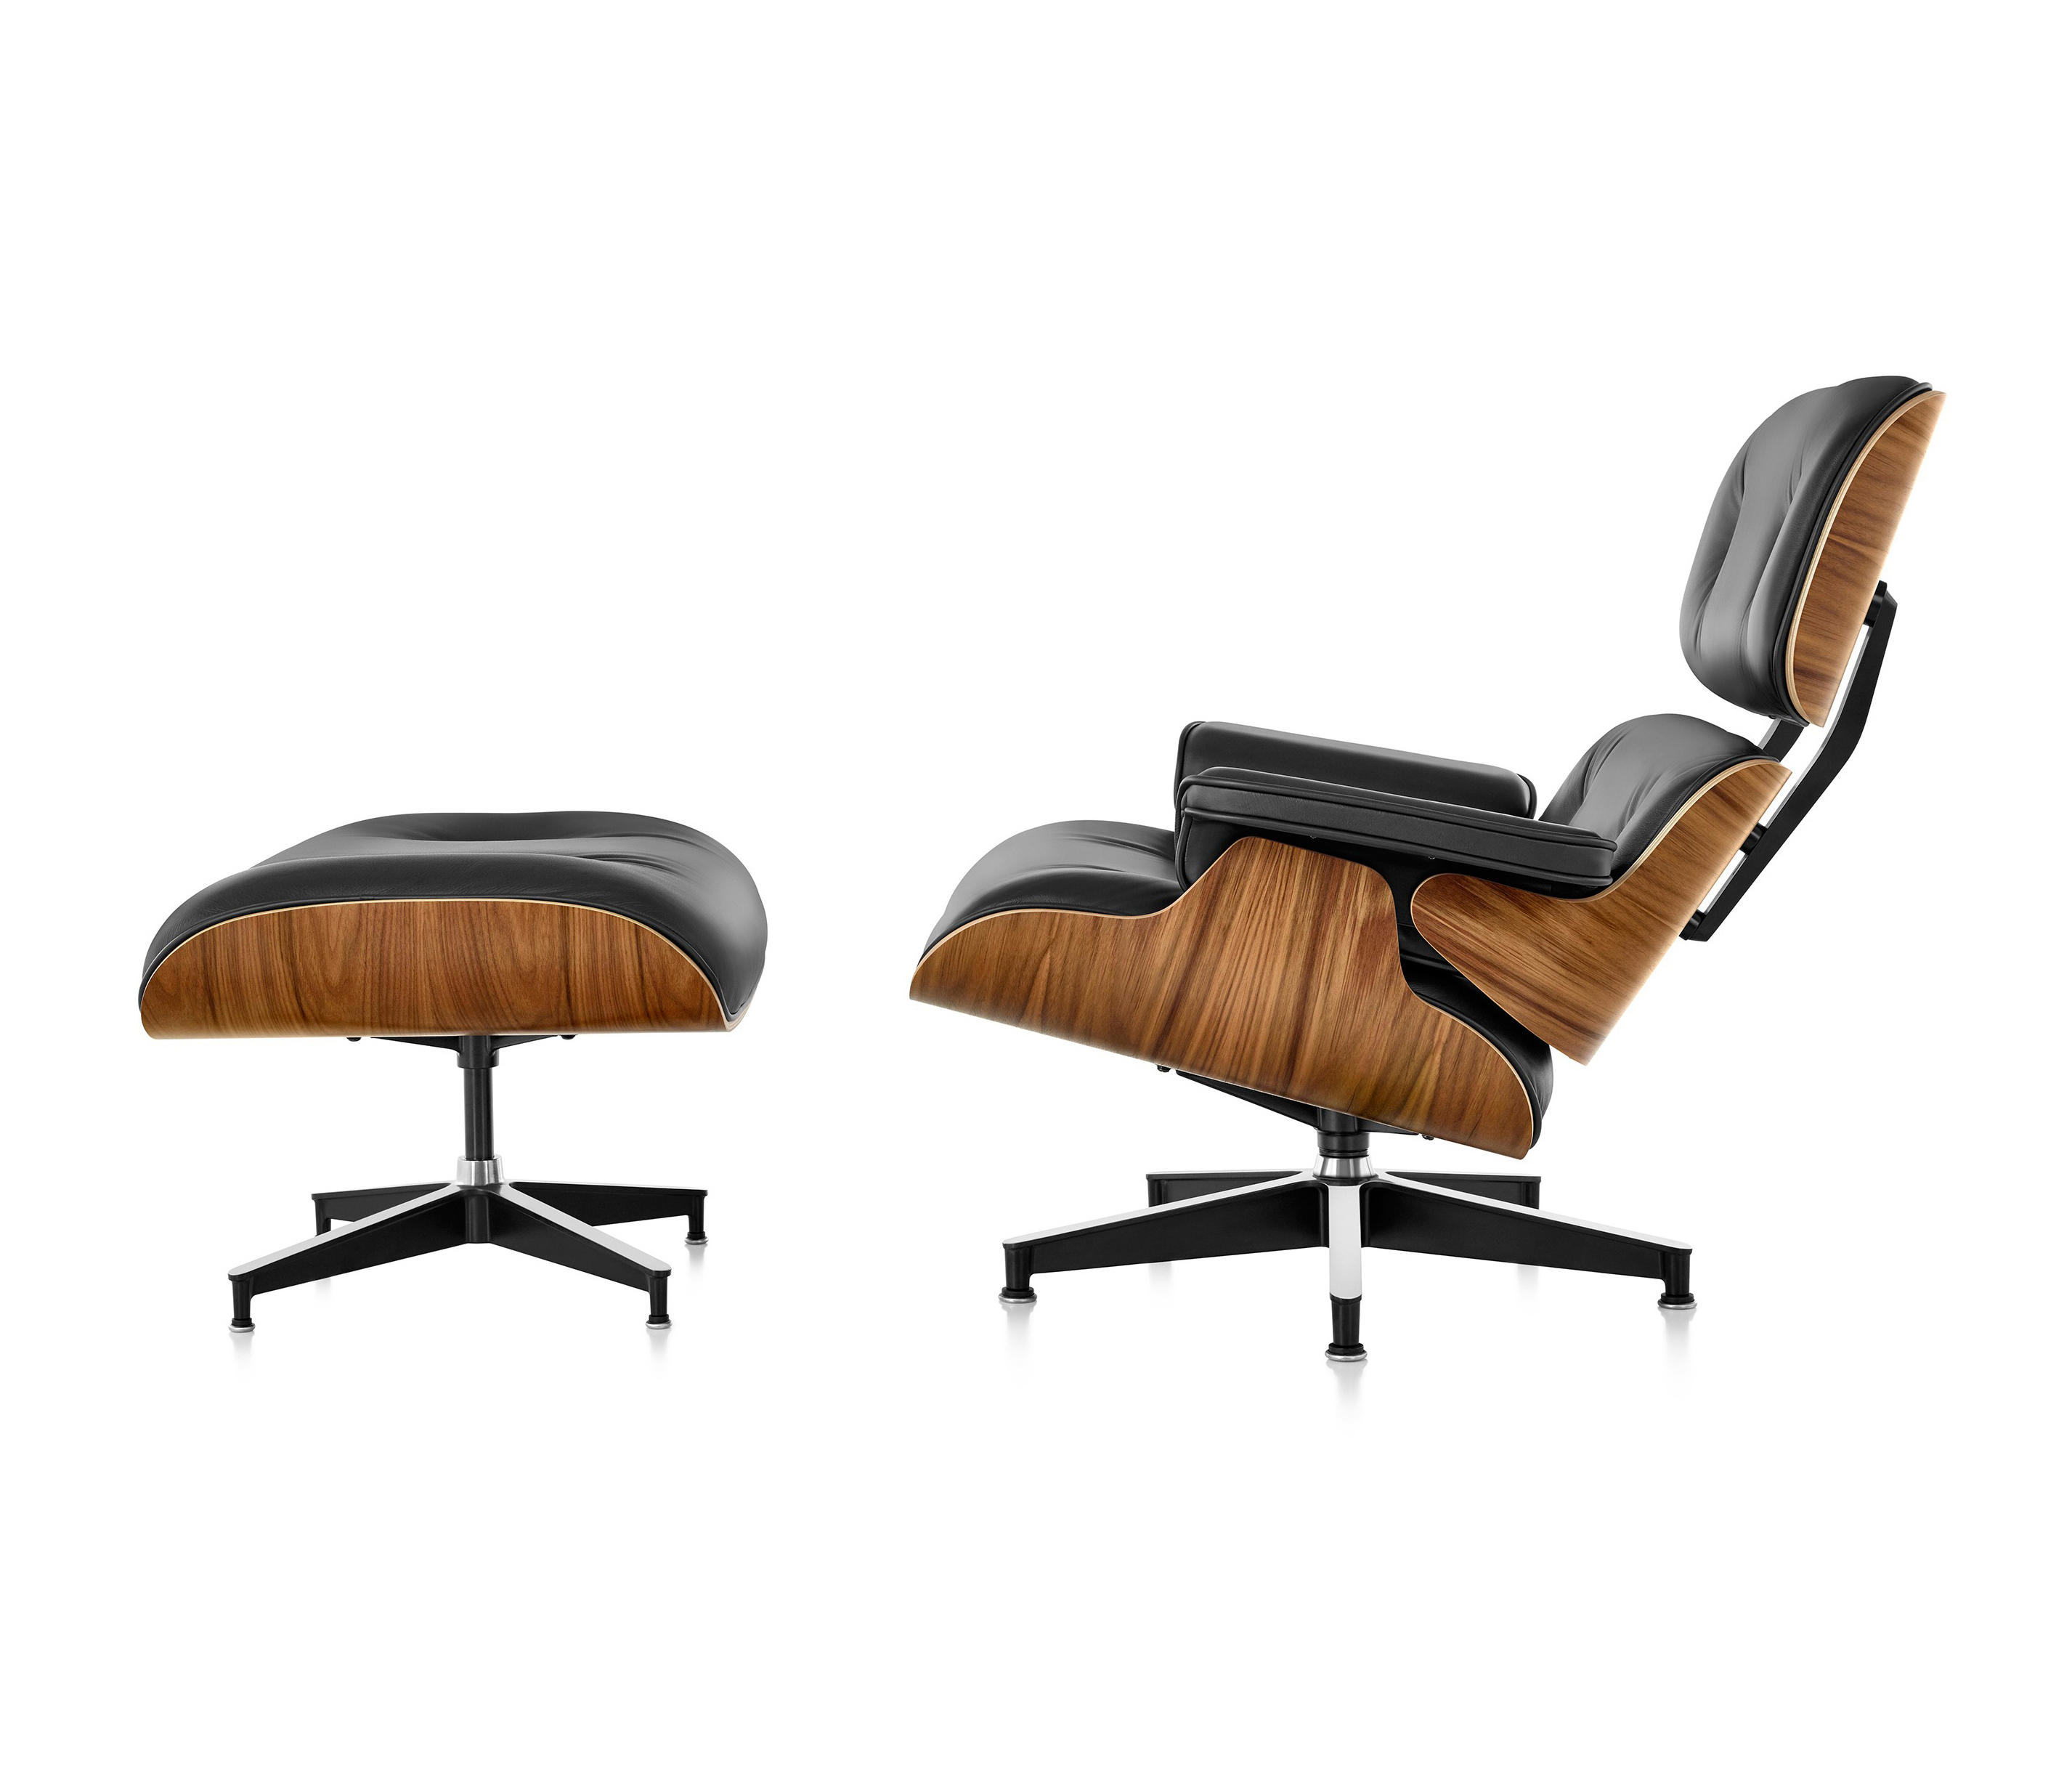 Eames Lounge Chair And Ottoman Lounge Chairs From Herman